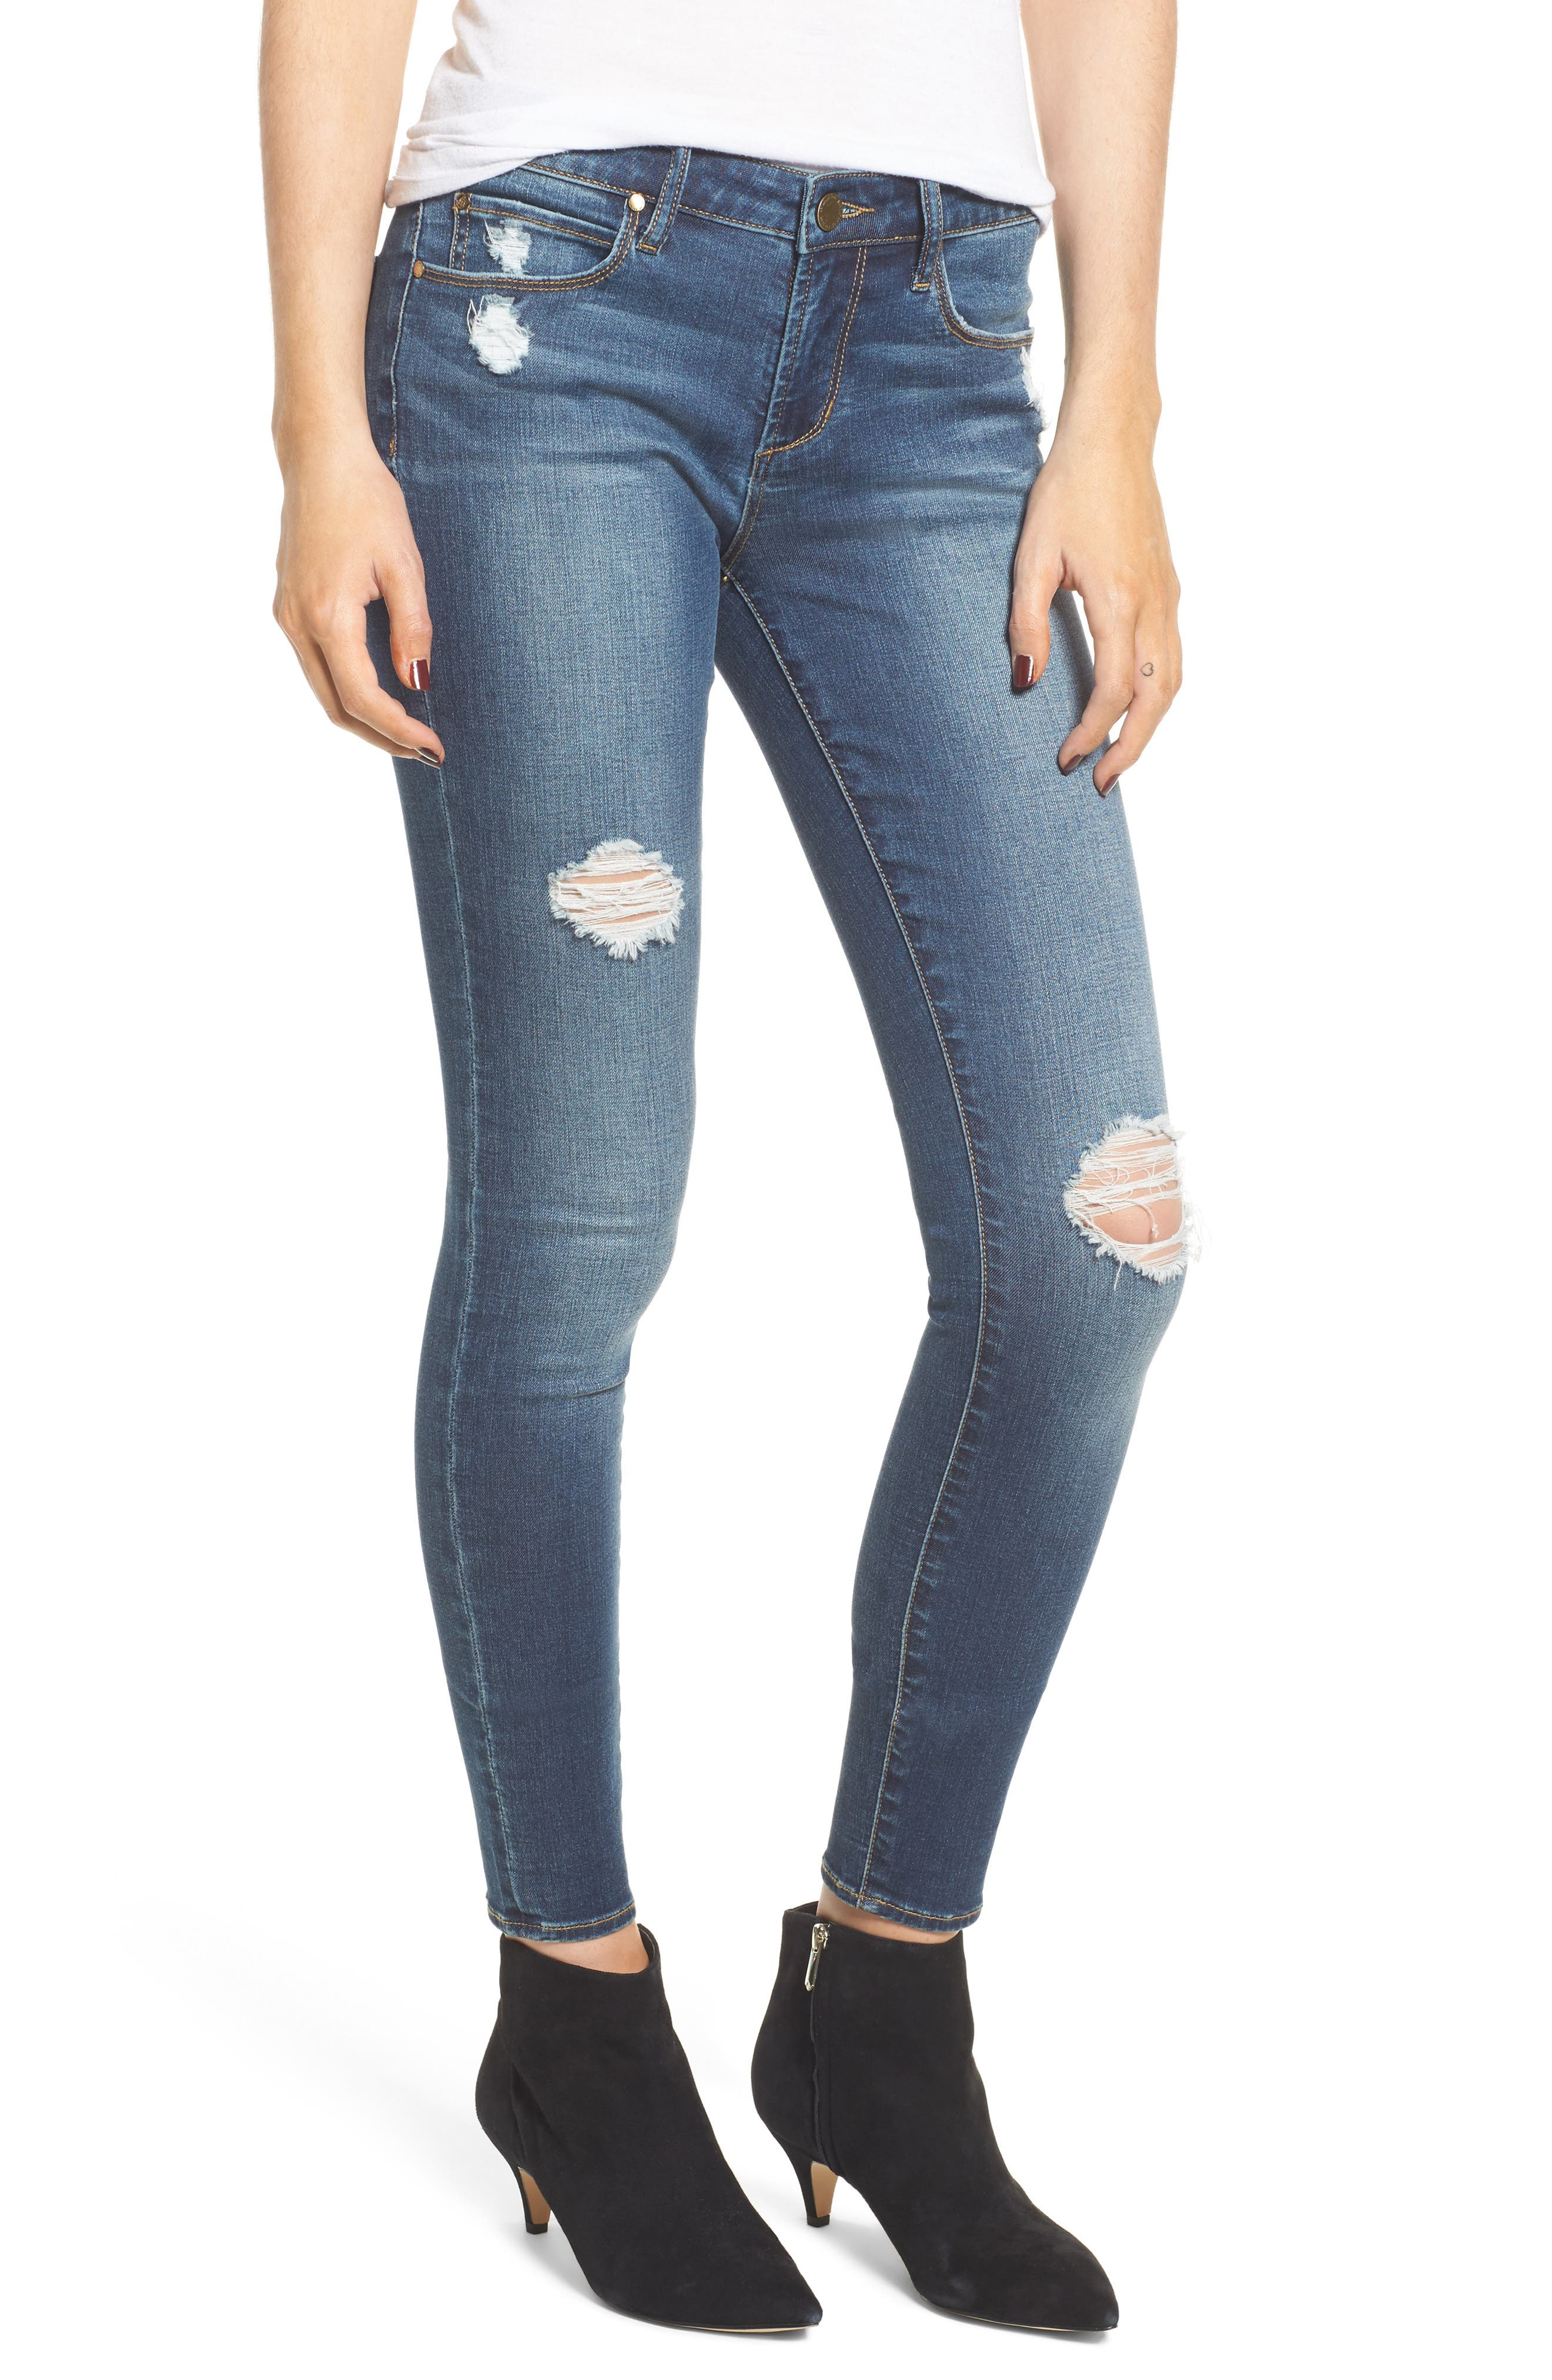 Articles of Society Sarah Shadow Pocket Distressed Skinny Jeans (Illusion)